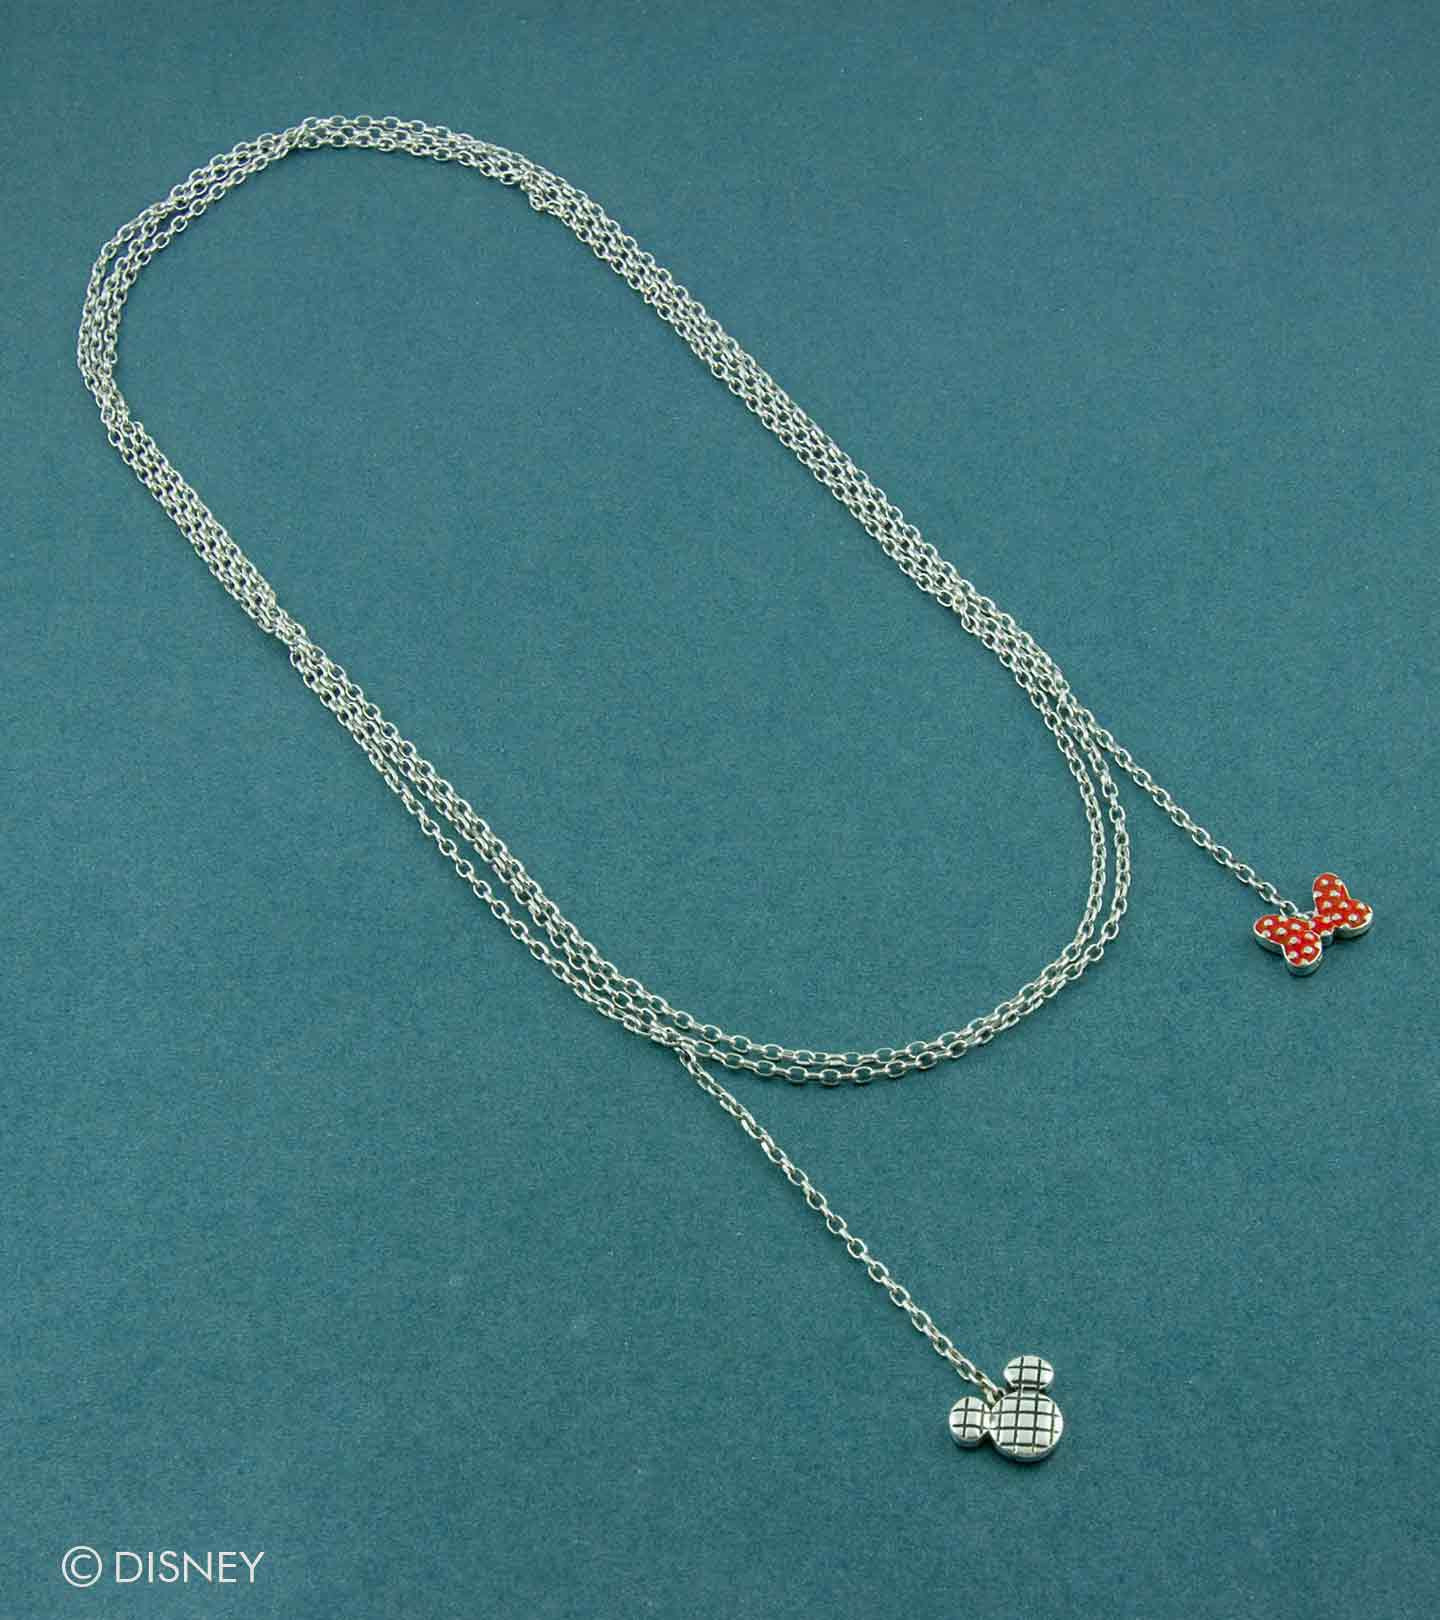 Mickey Loves Minnie Lariat Necklace Regarding Latest Disney Minnie'S Polka Dots Pendant Necklaces (Gallery 10 of 25)